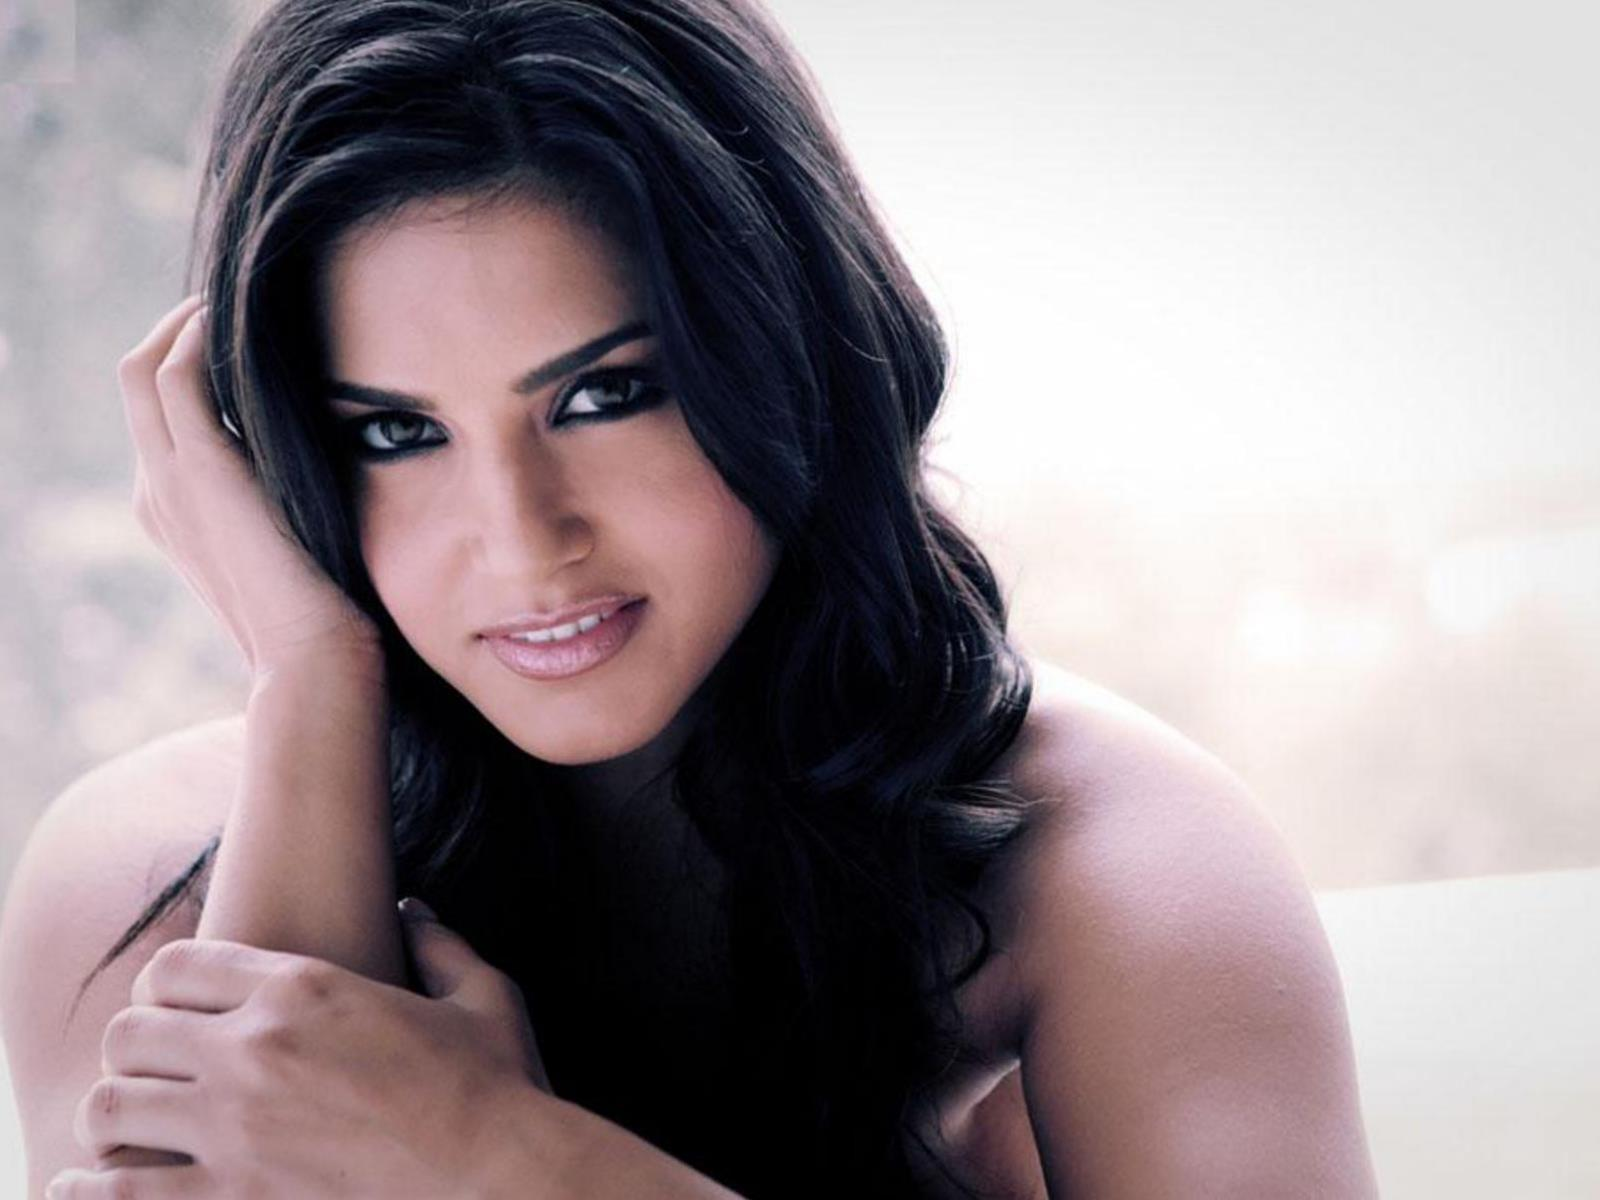 http://2.bp.blogspot.com/-UGSMY20xAZU/T4egjD_isnI/AAAAAAAADUk/HXTJiwuy7Co/s1600/sunny+leone+hd+wallpapers+for+windows.jpg